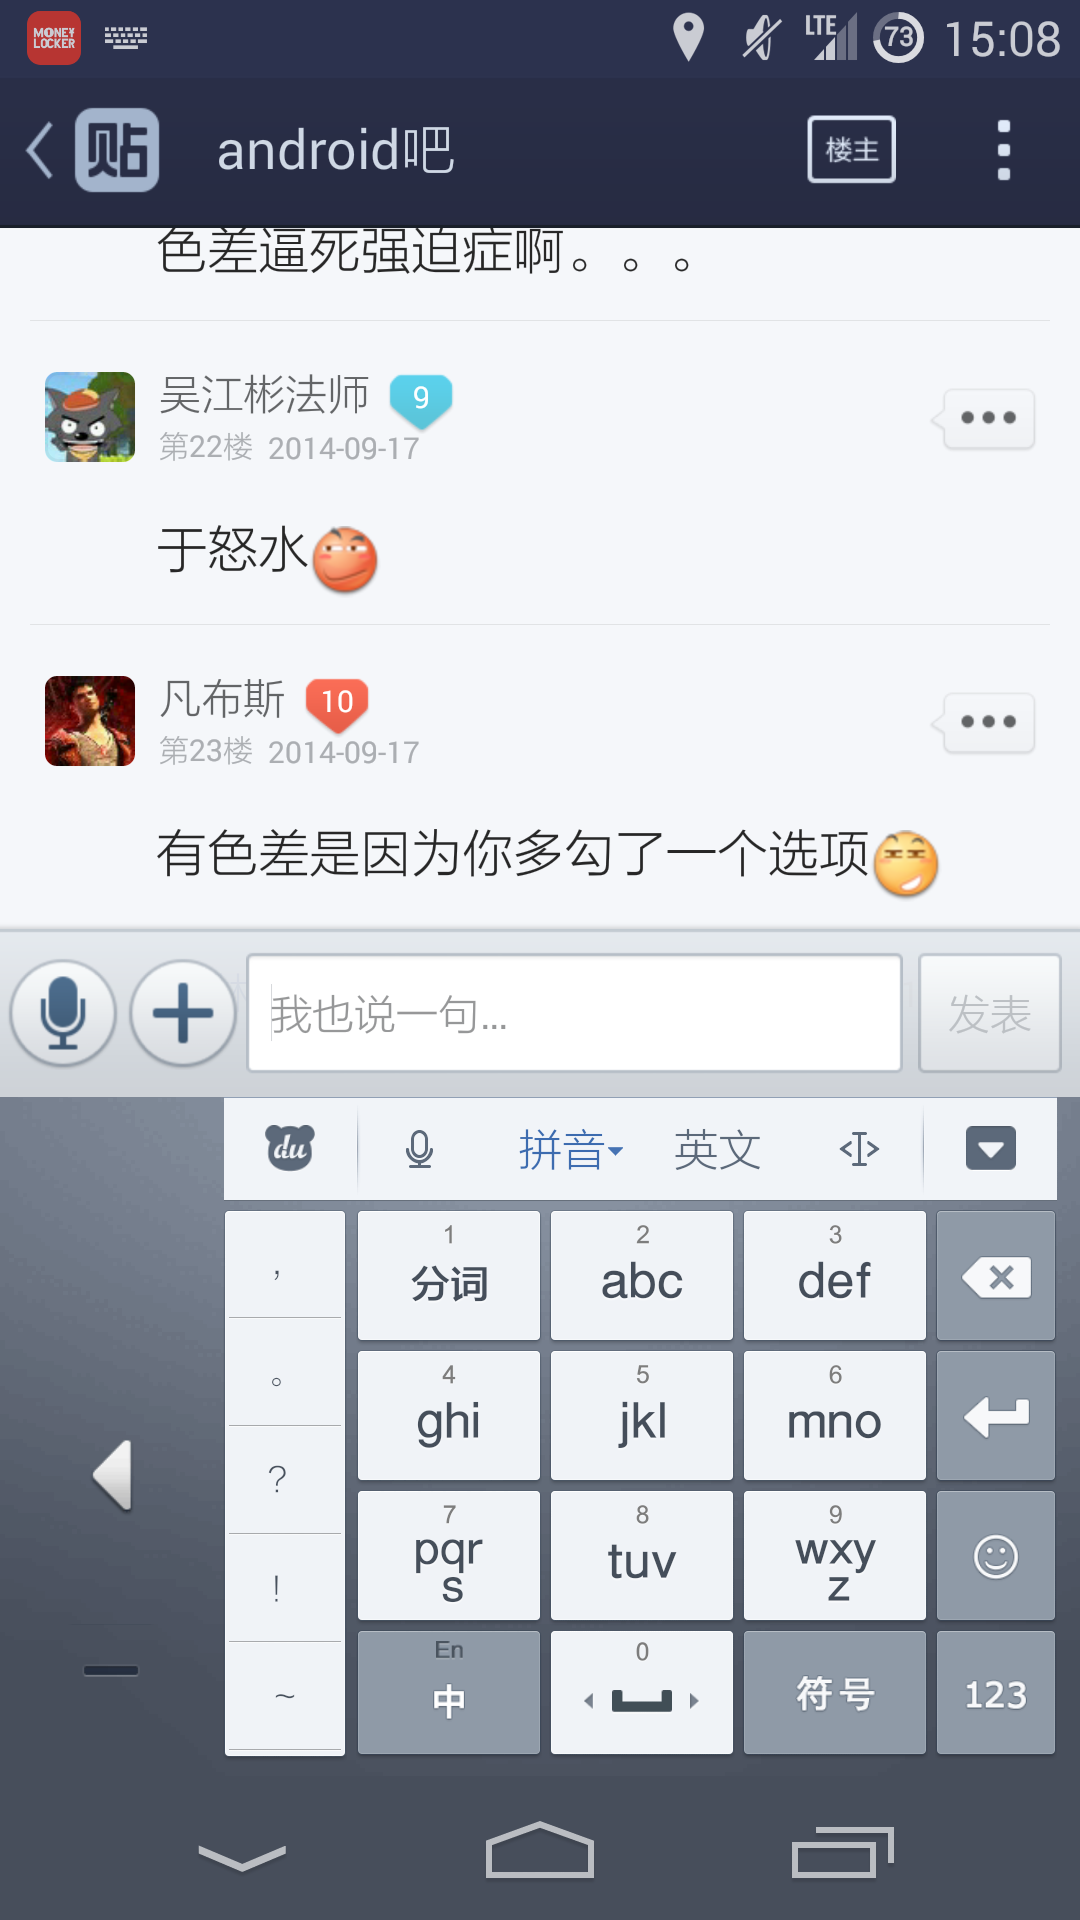 Screenshot_2013-09-17-15-08-48.png